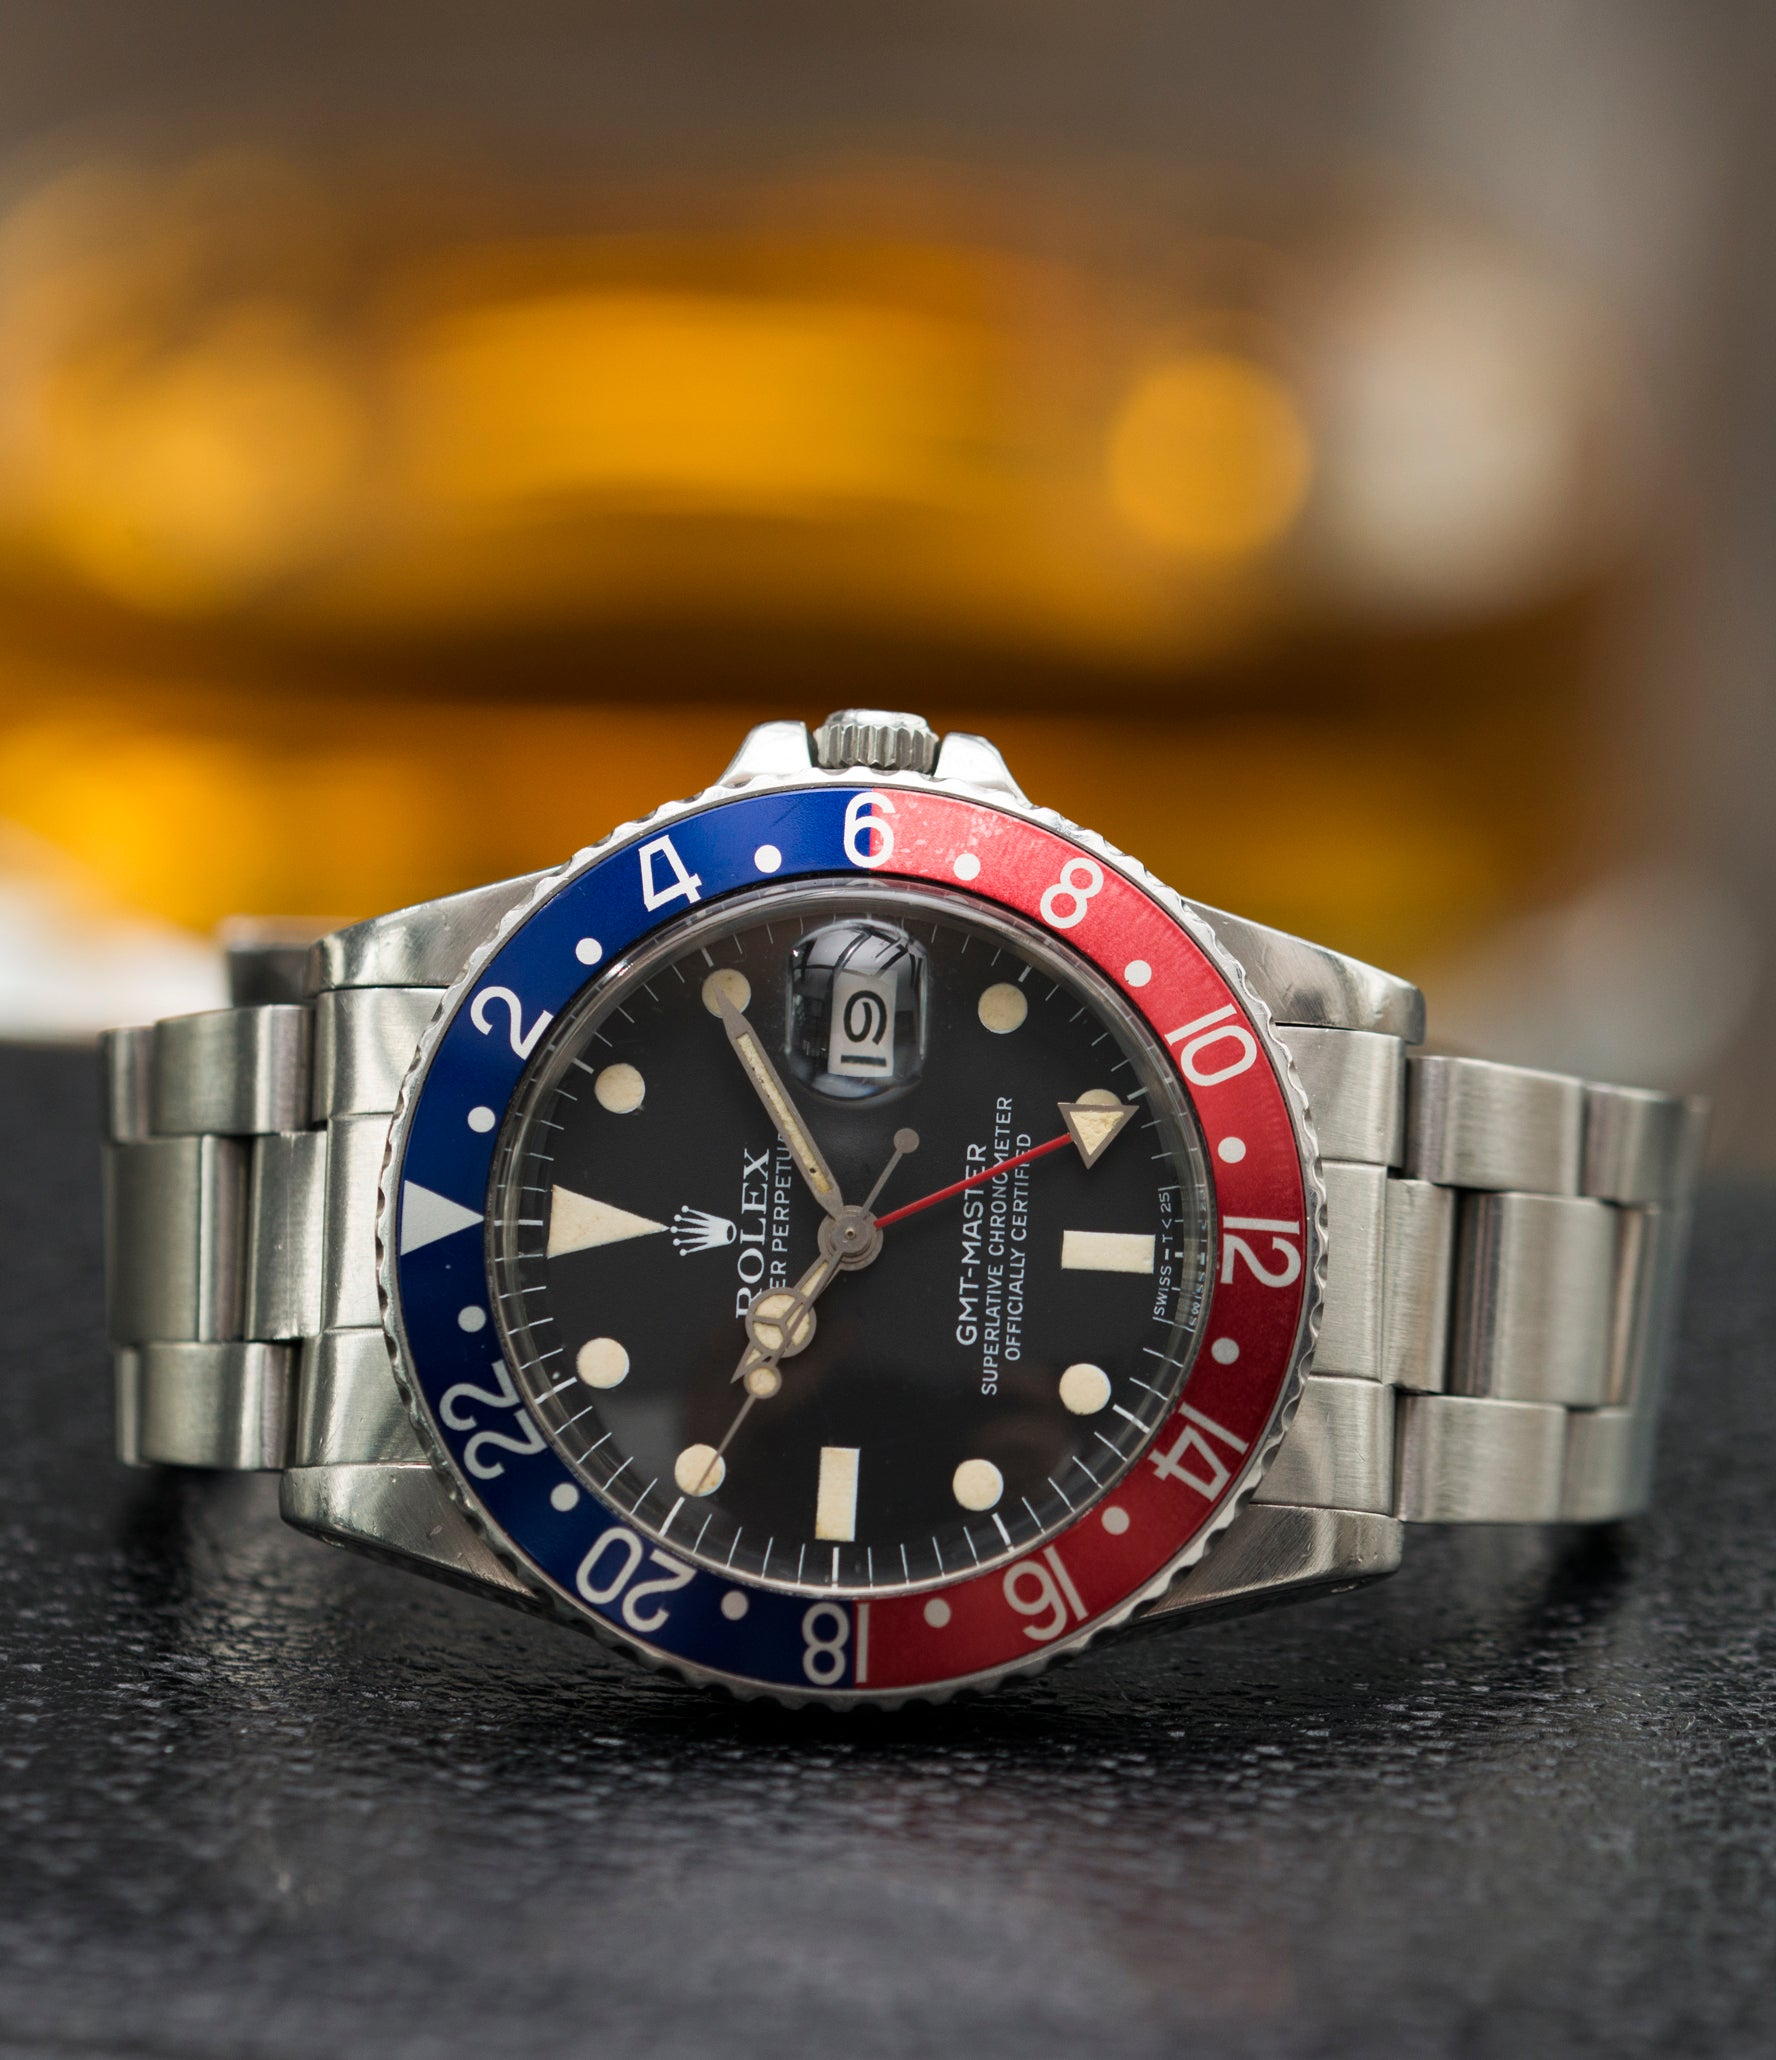 vintage watch Rolex 16750 GMT-Master Pepsi bezel steel sport traveller watch for sale online at A Collected Man London vintage watch specialist